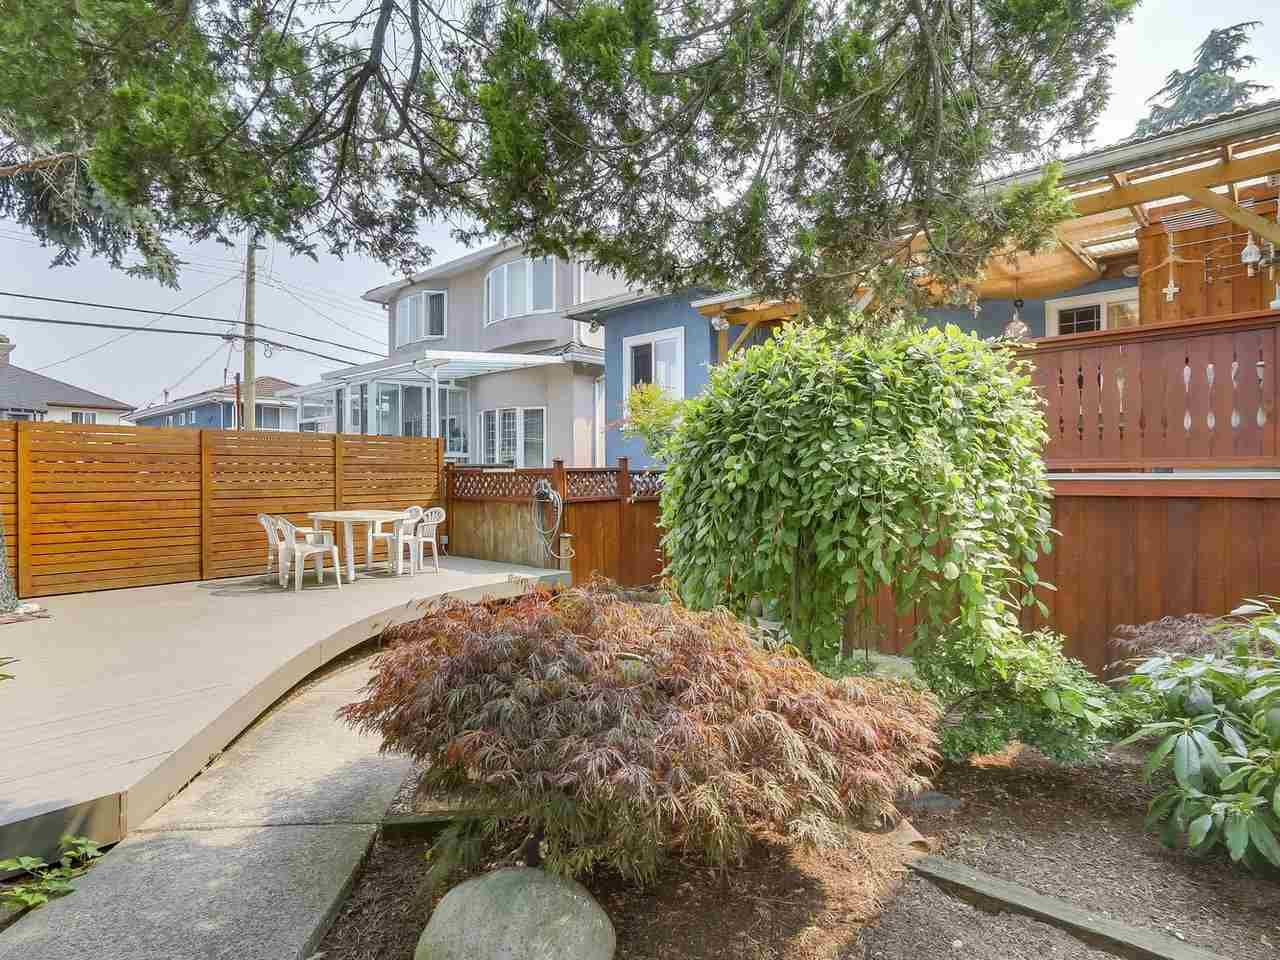 Photo 16: Photos: 165 E 55TH AVENUE in Vancouver: South Vancouver House for sale (Vancouver East)  : MLS®# R2297472